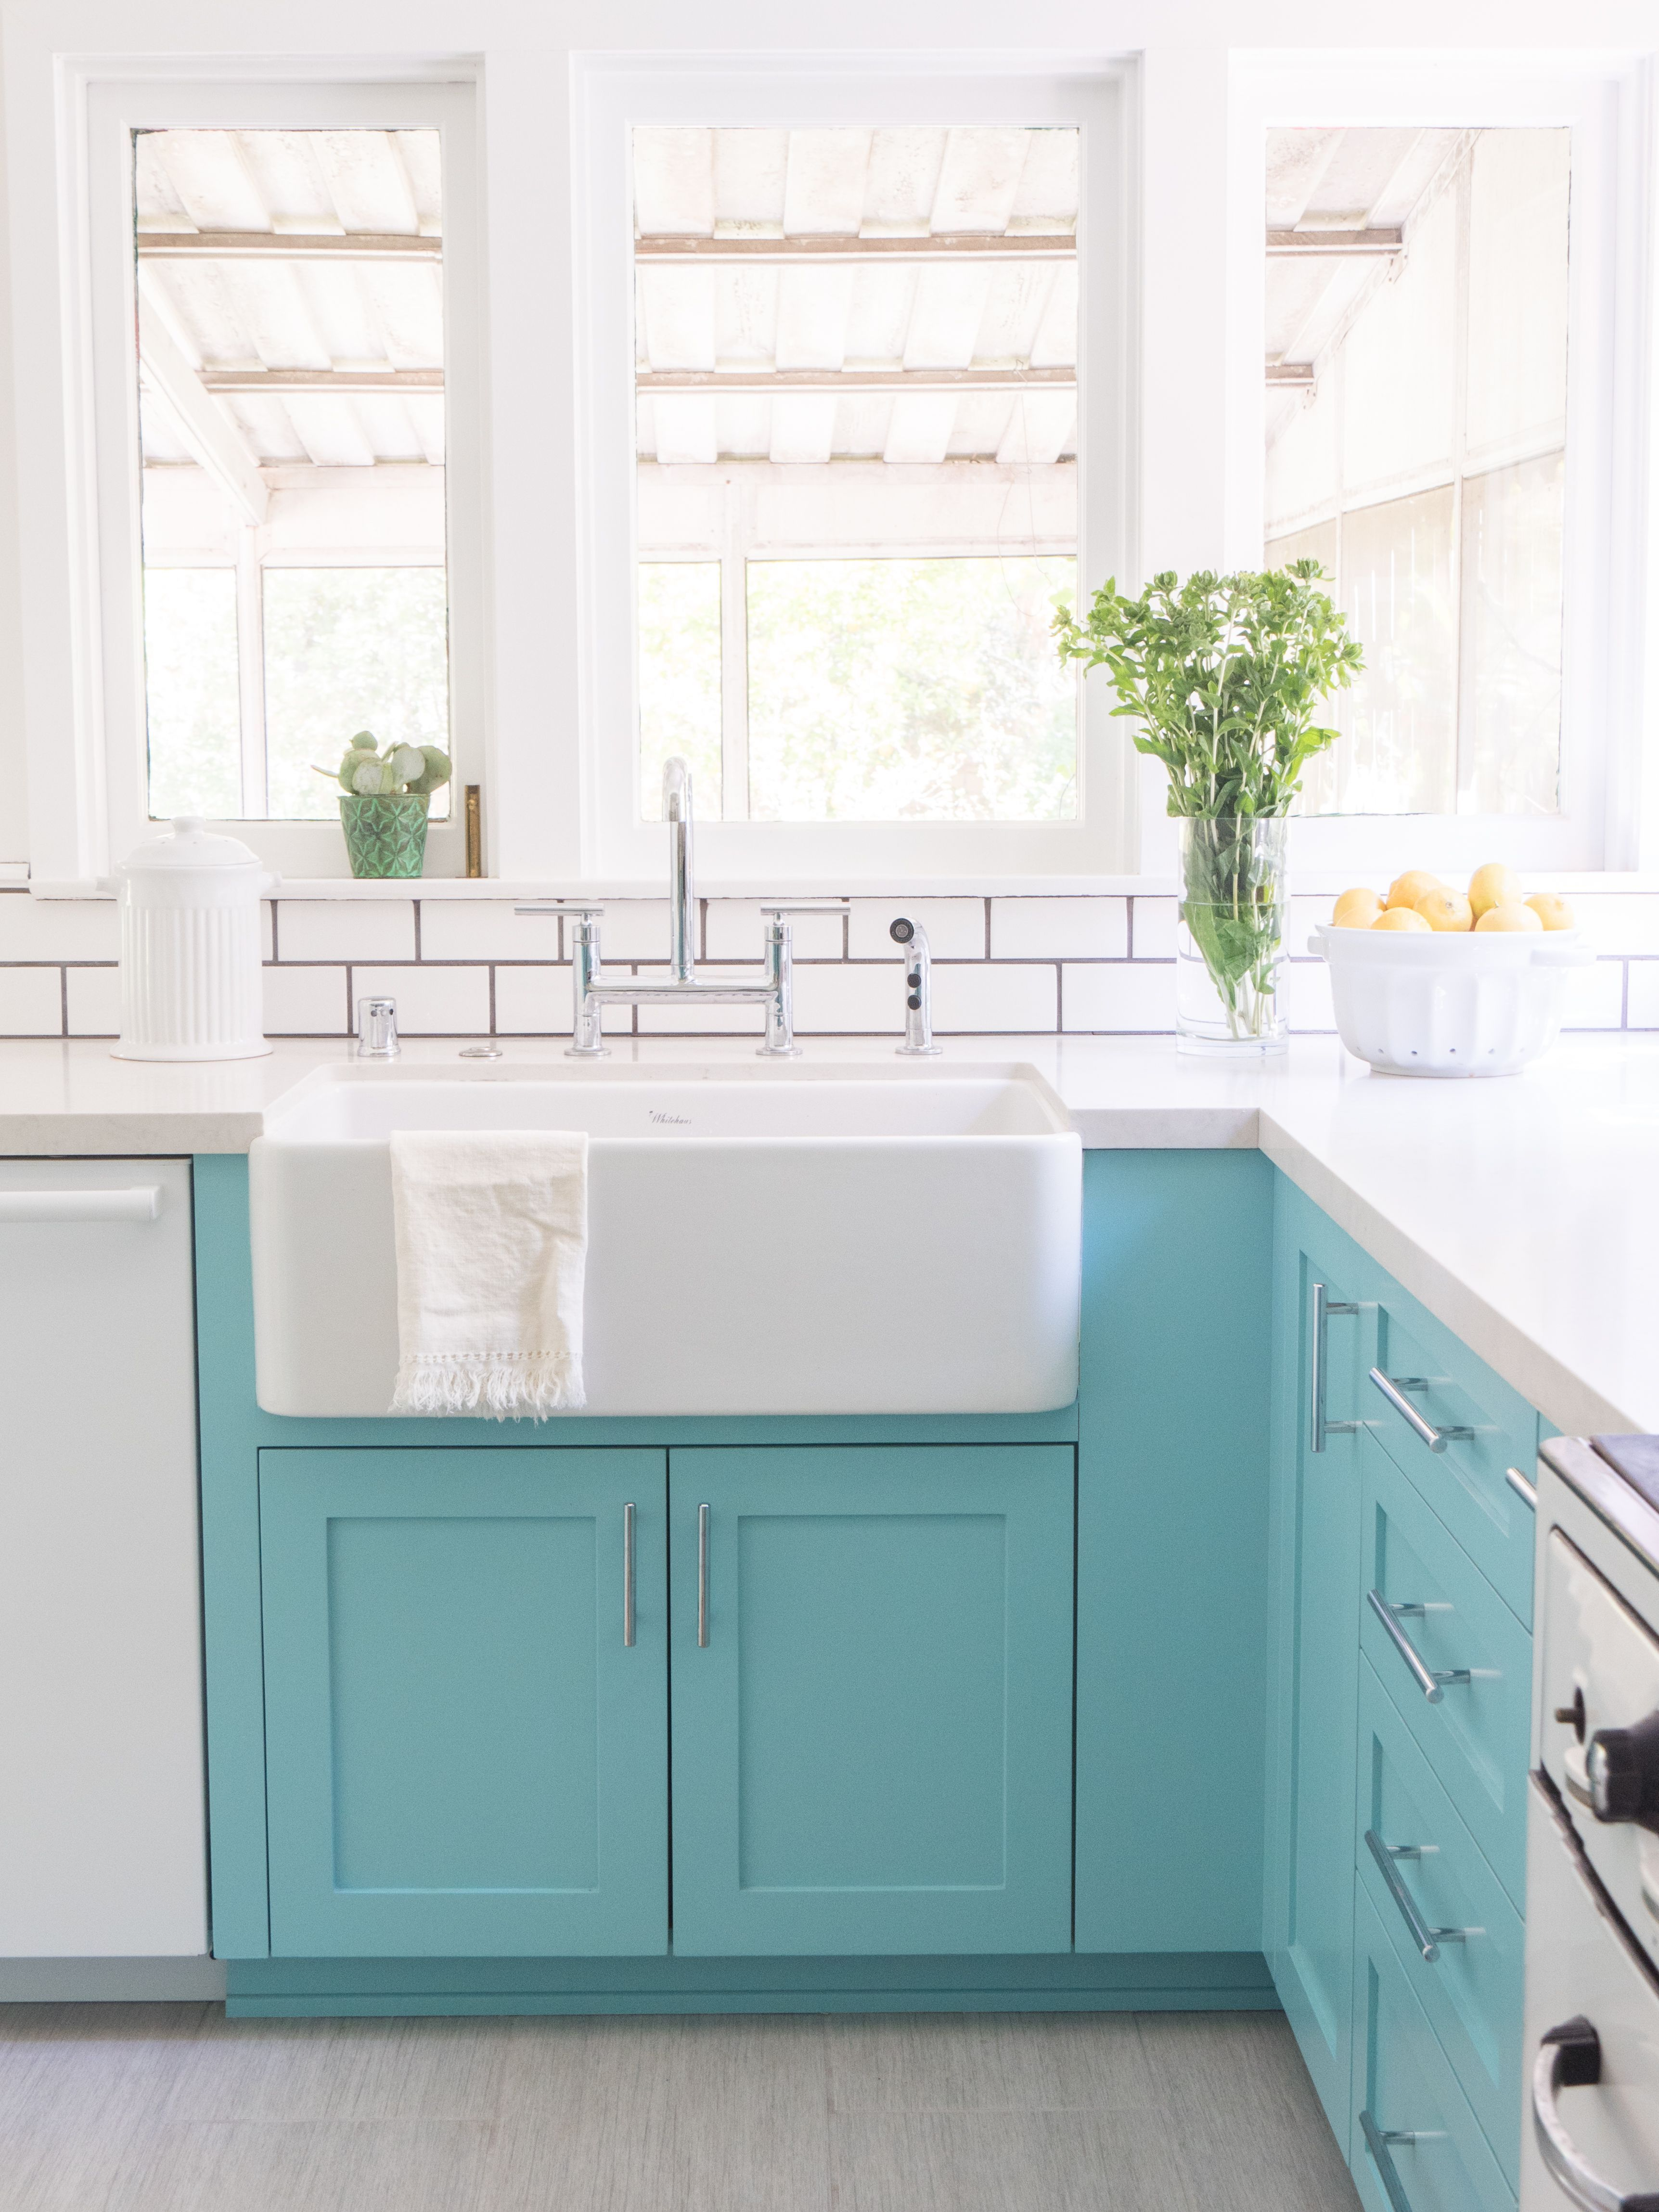 A 1920s Kitchen Gets a Bright, Modern Makeover | Famous interior ...